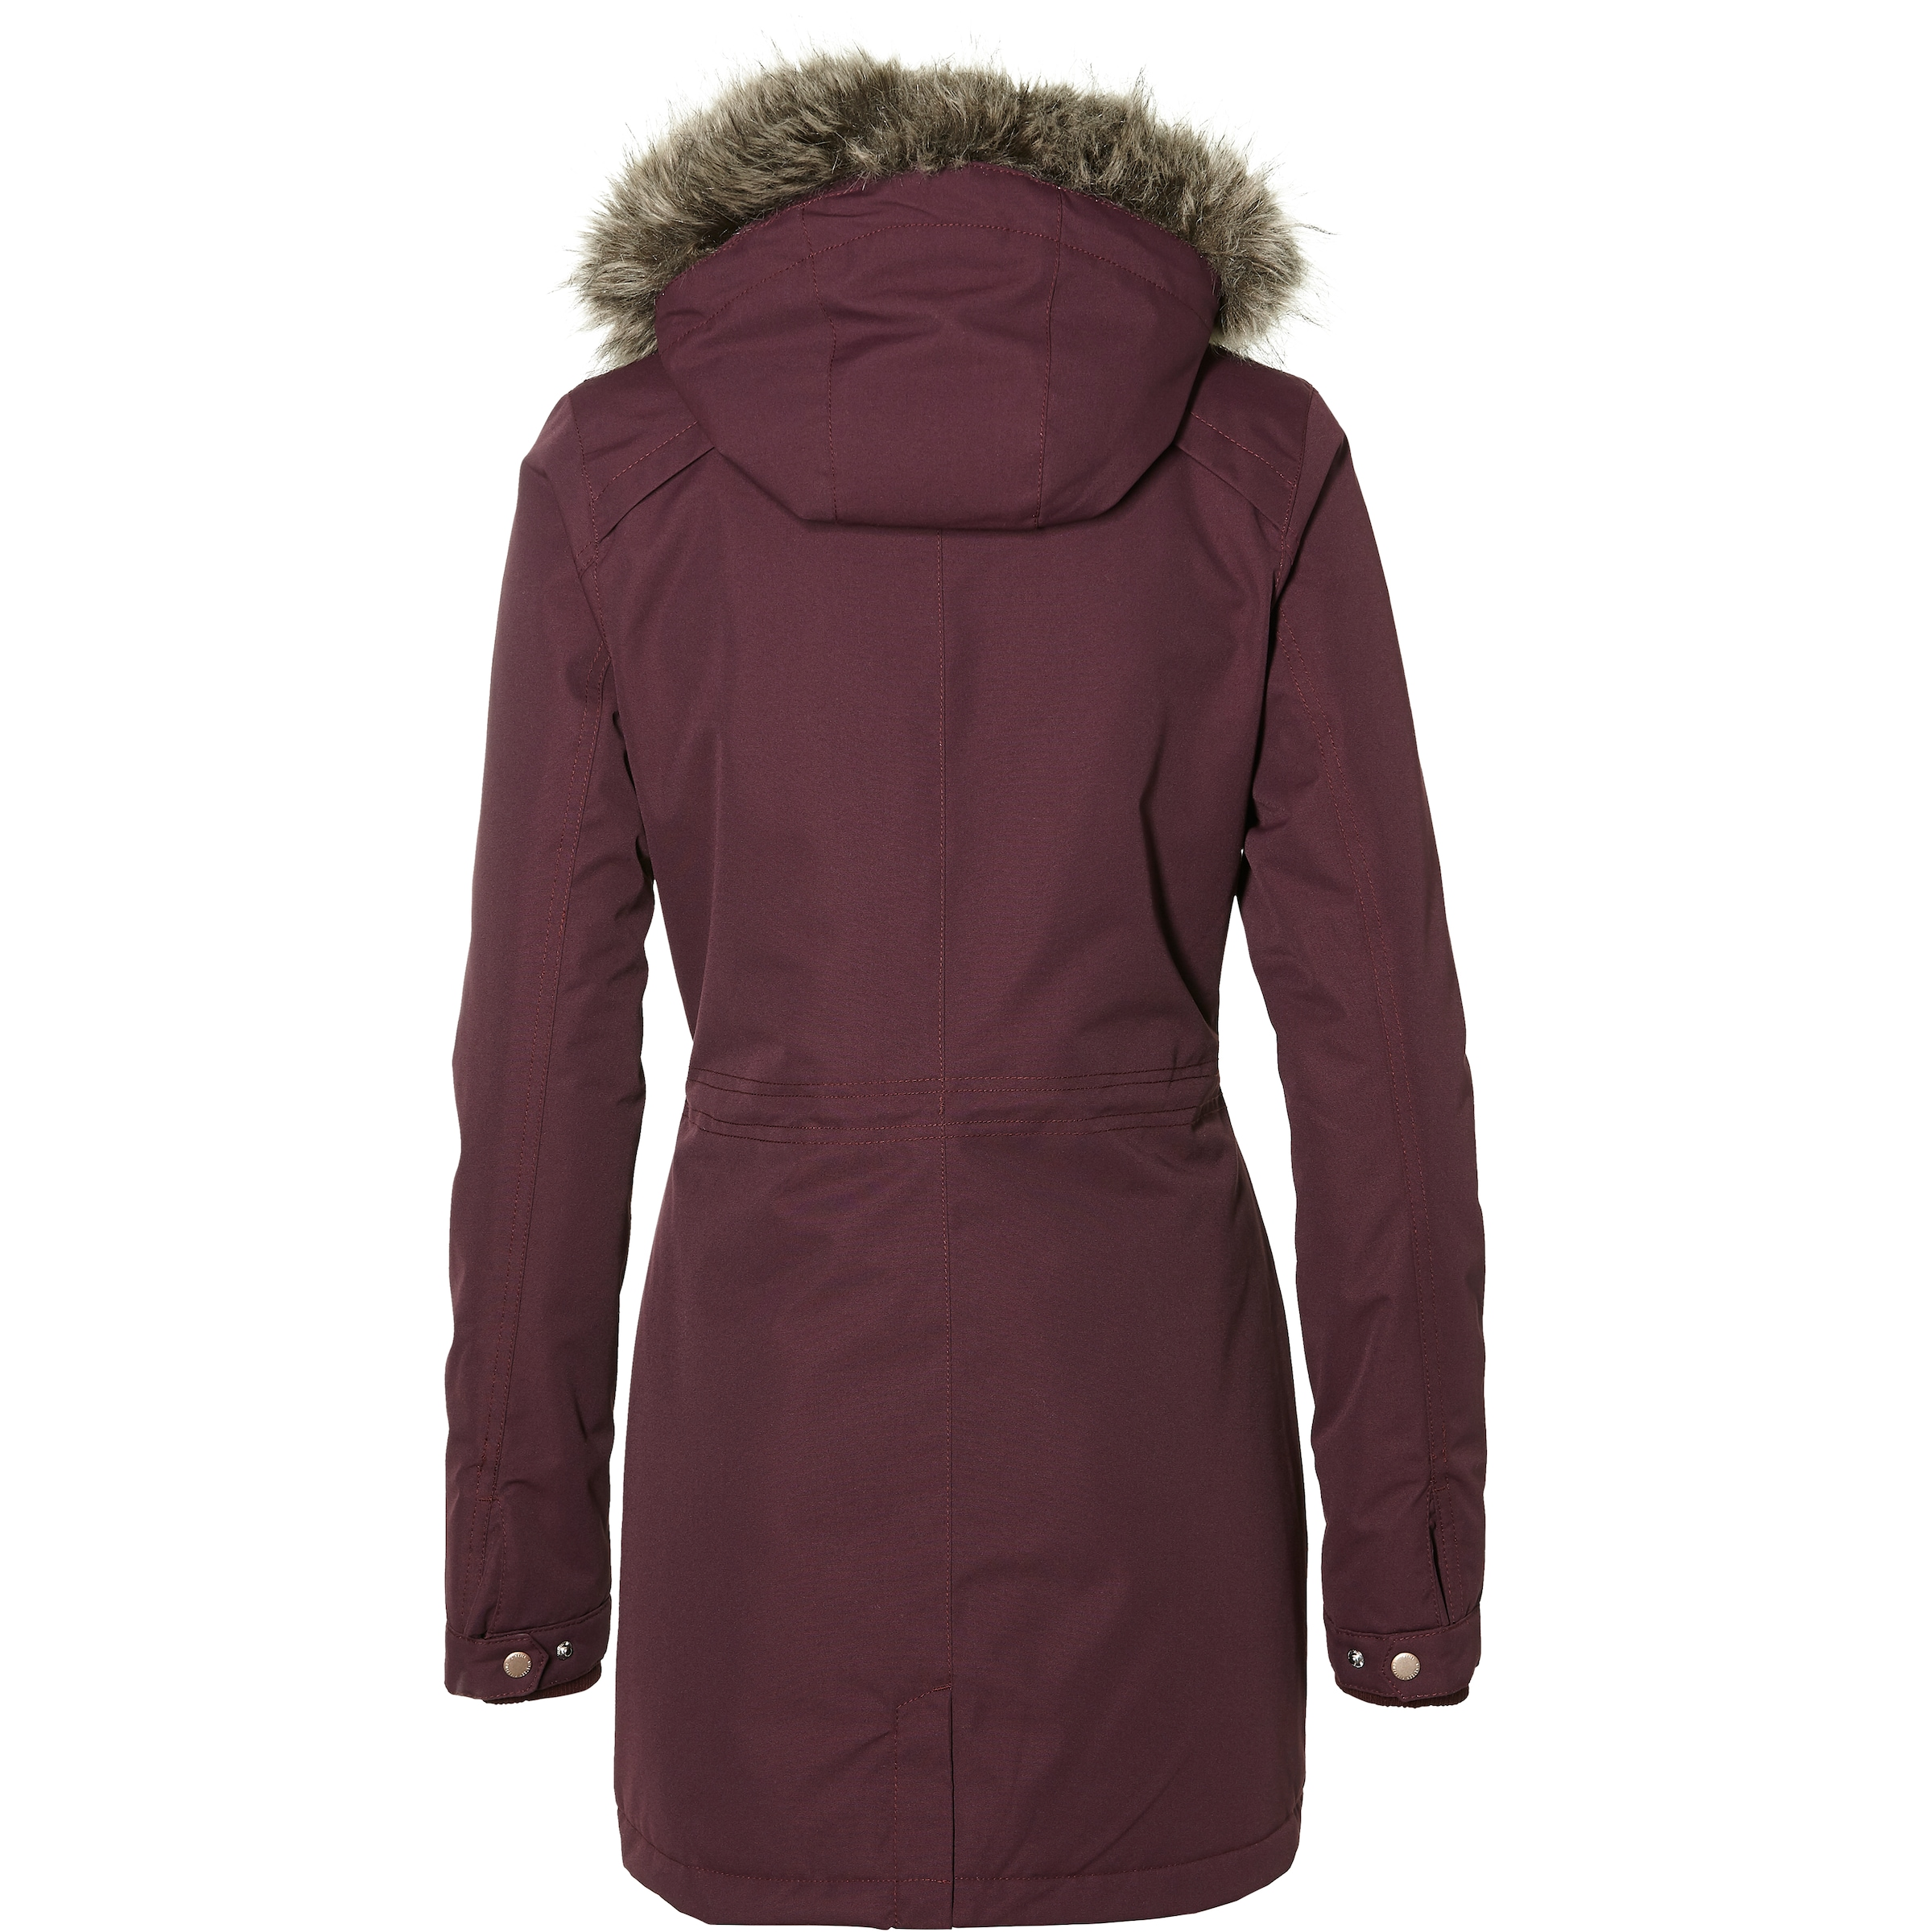 Beere 'lw Journey In O'neill Parka Parka' fgv76yYbI